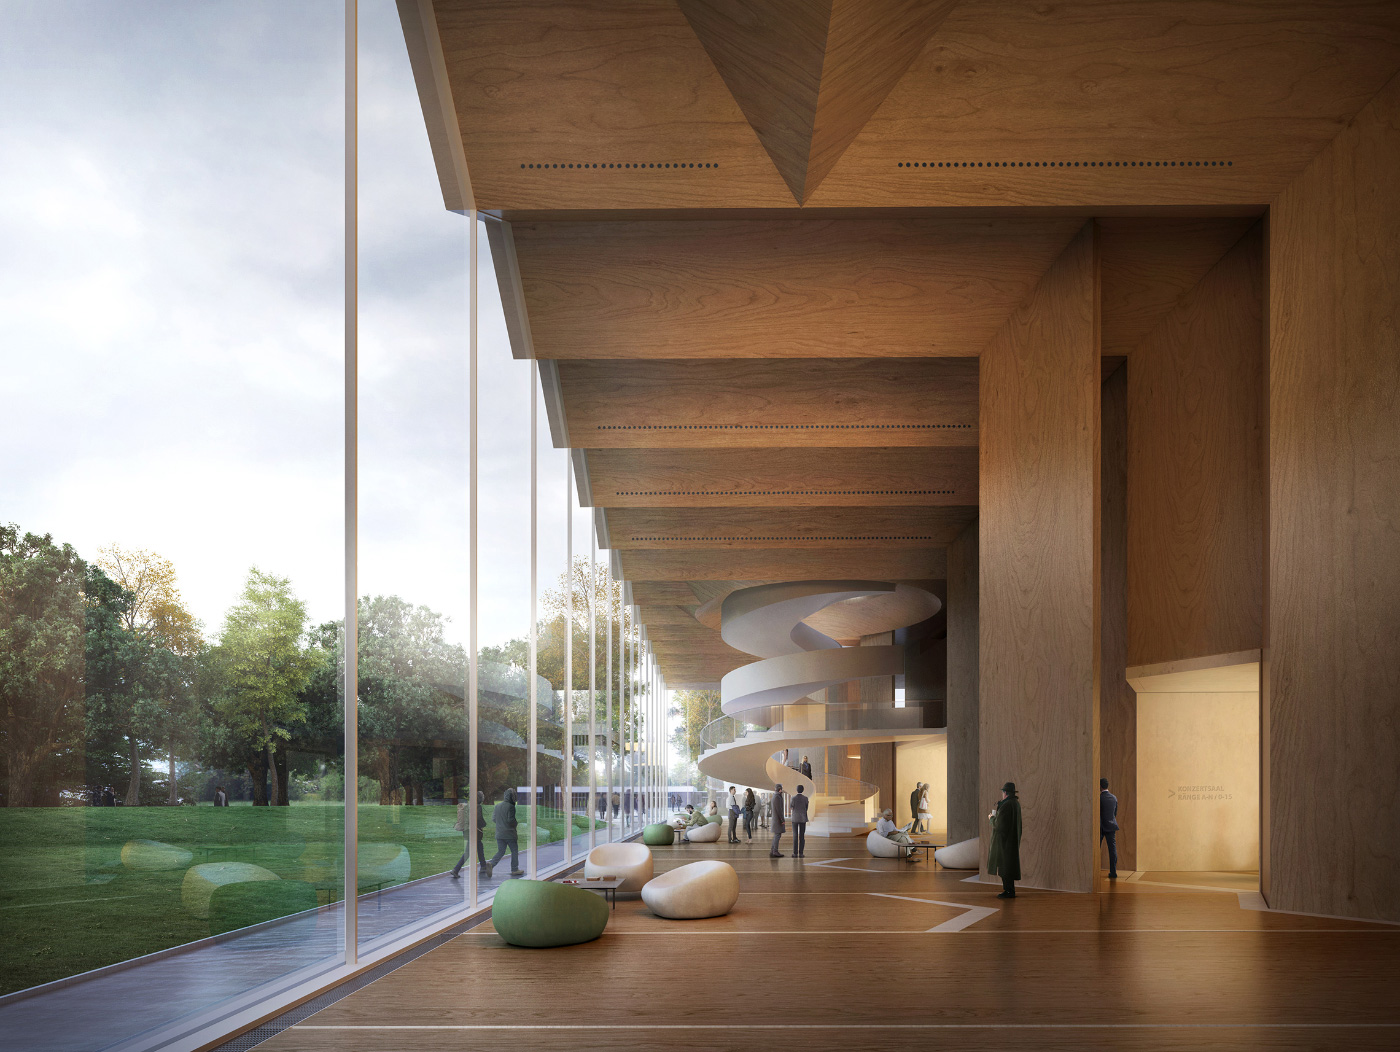 Rendering of a timber concert hall with undulating ceiling